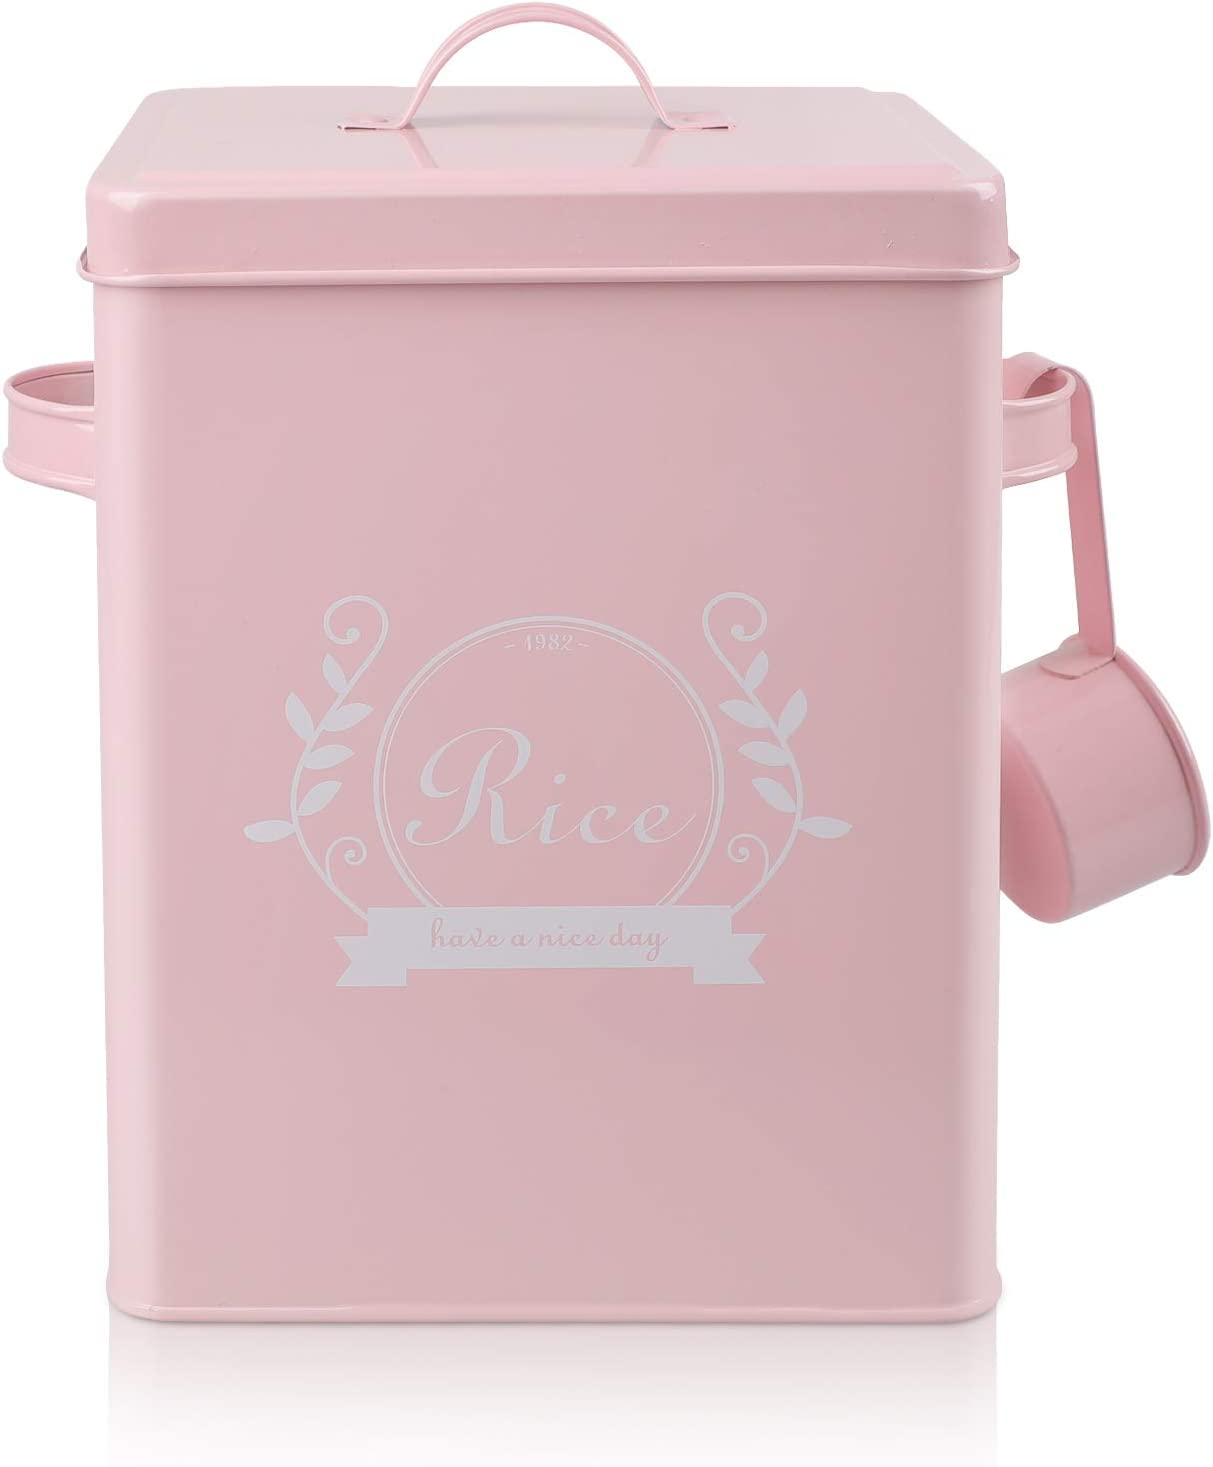 DAILYLIFE Square Metal Rice Flour Food Sundries Kitchen Storage Tin Canister Bucket Containers Pink